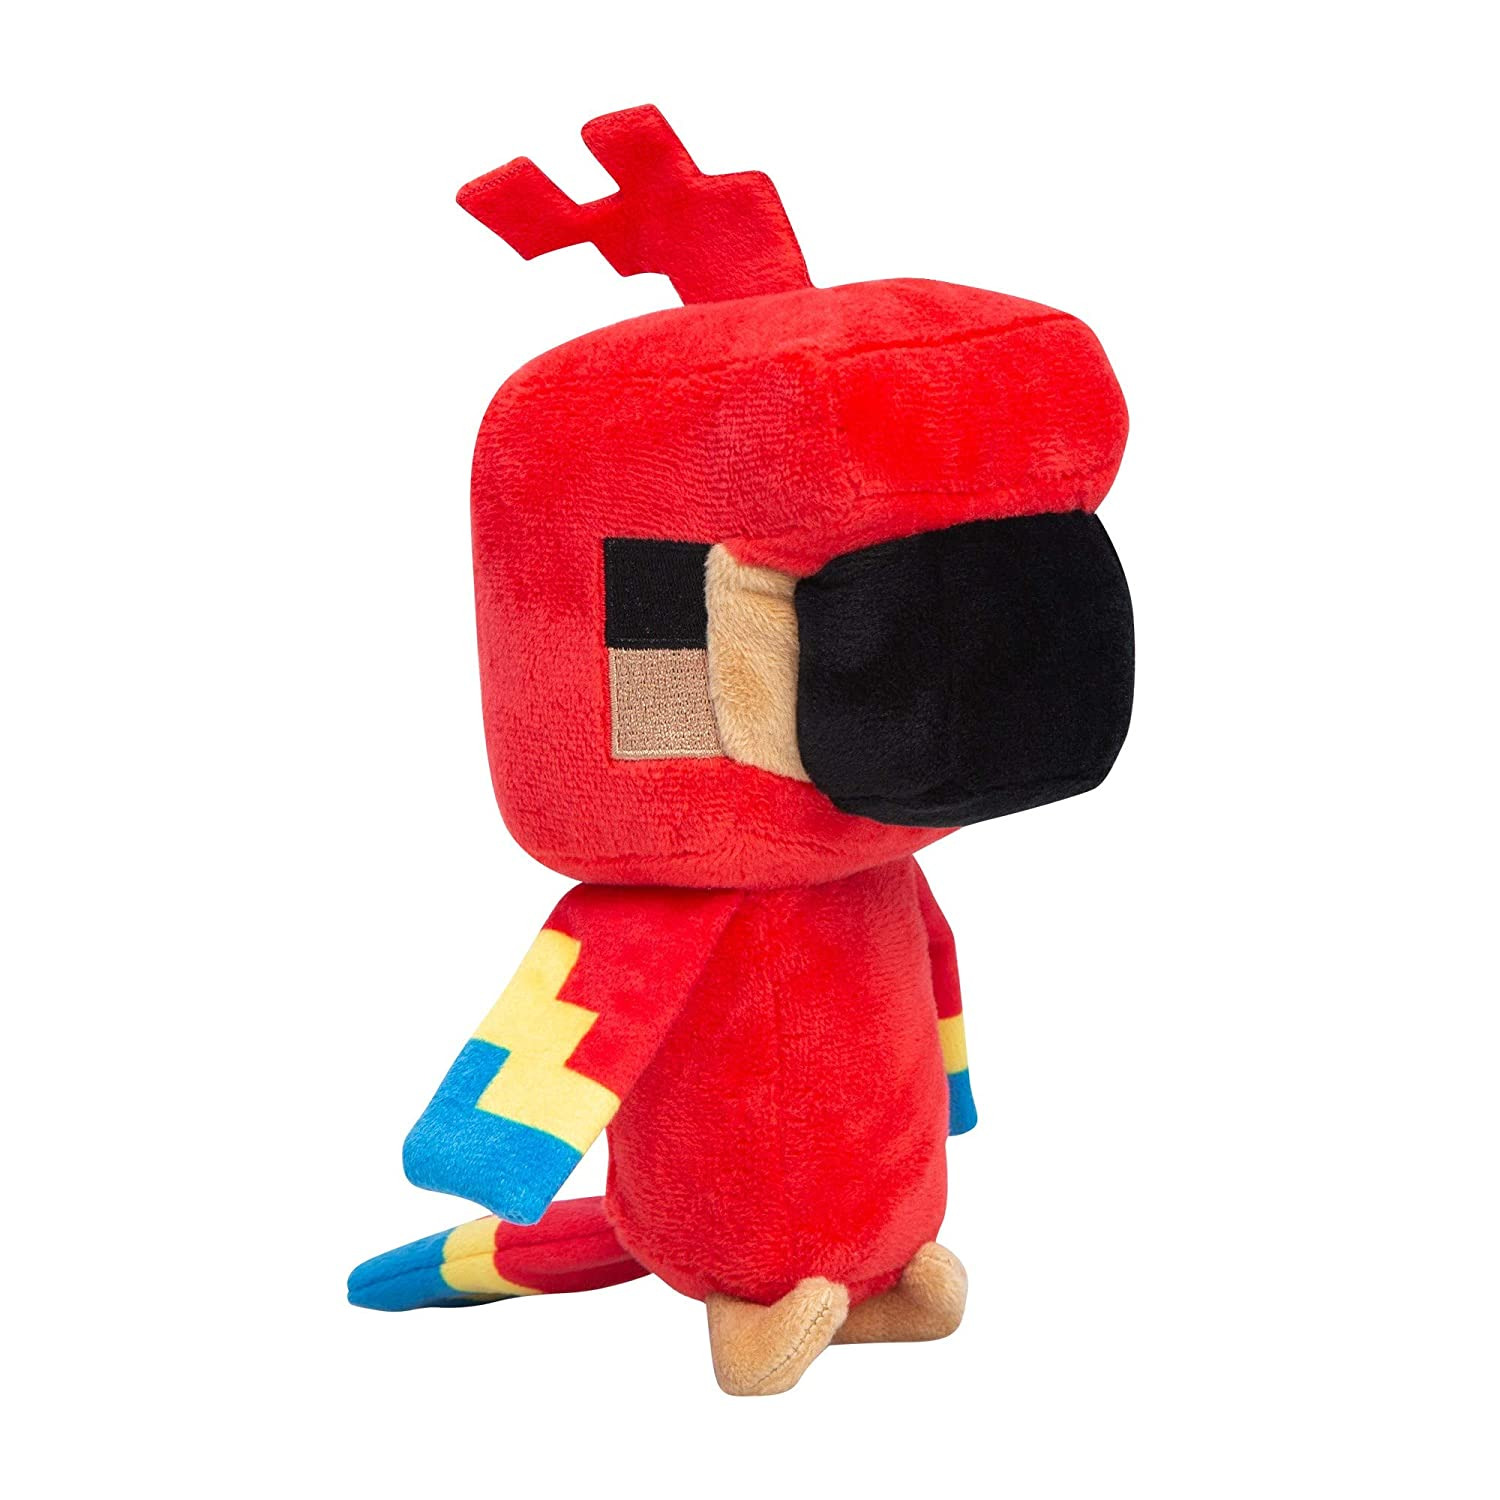 JINX Minecraft Happy Explorer Parrot Plush Stuffed Toy (Red, 7' Tall)